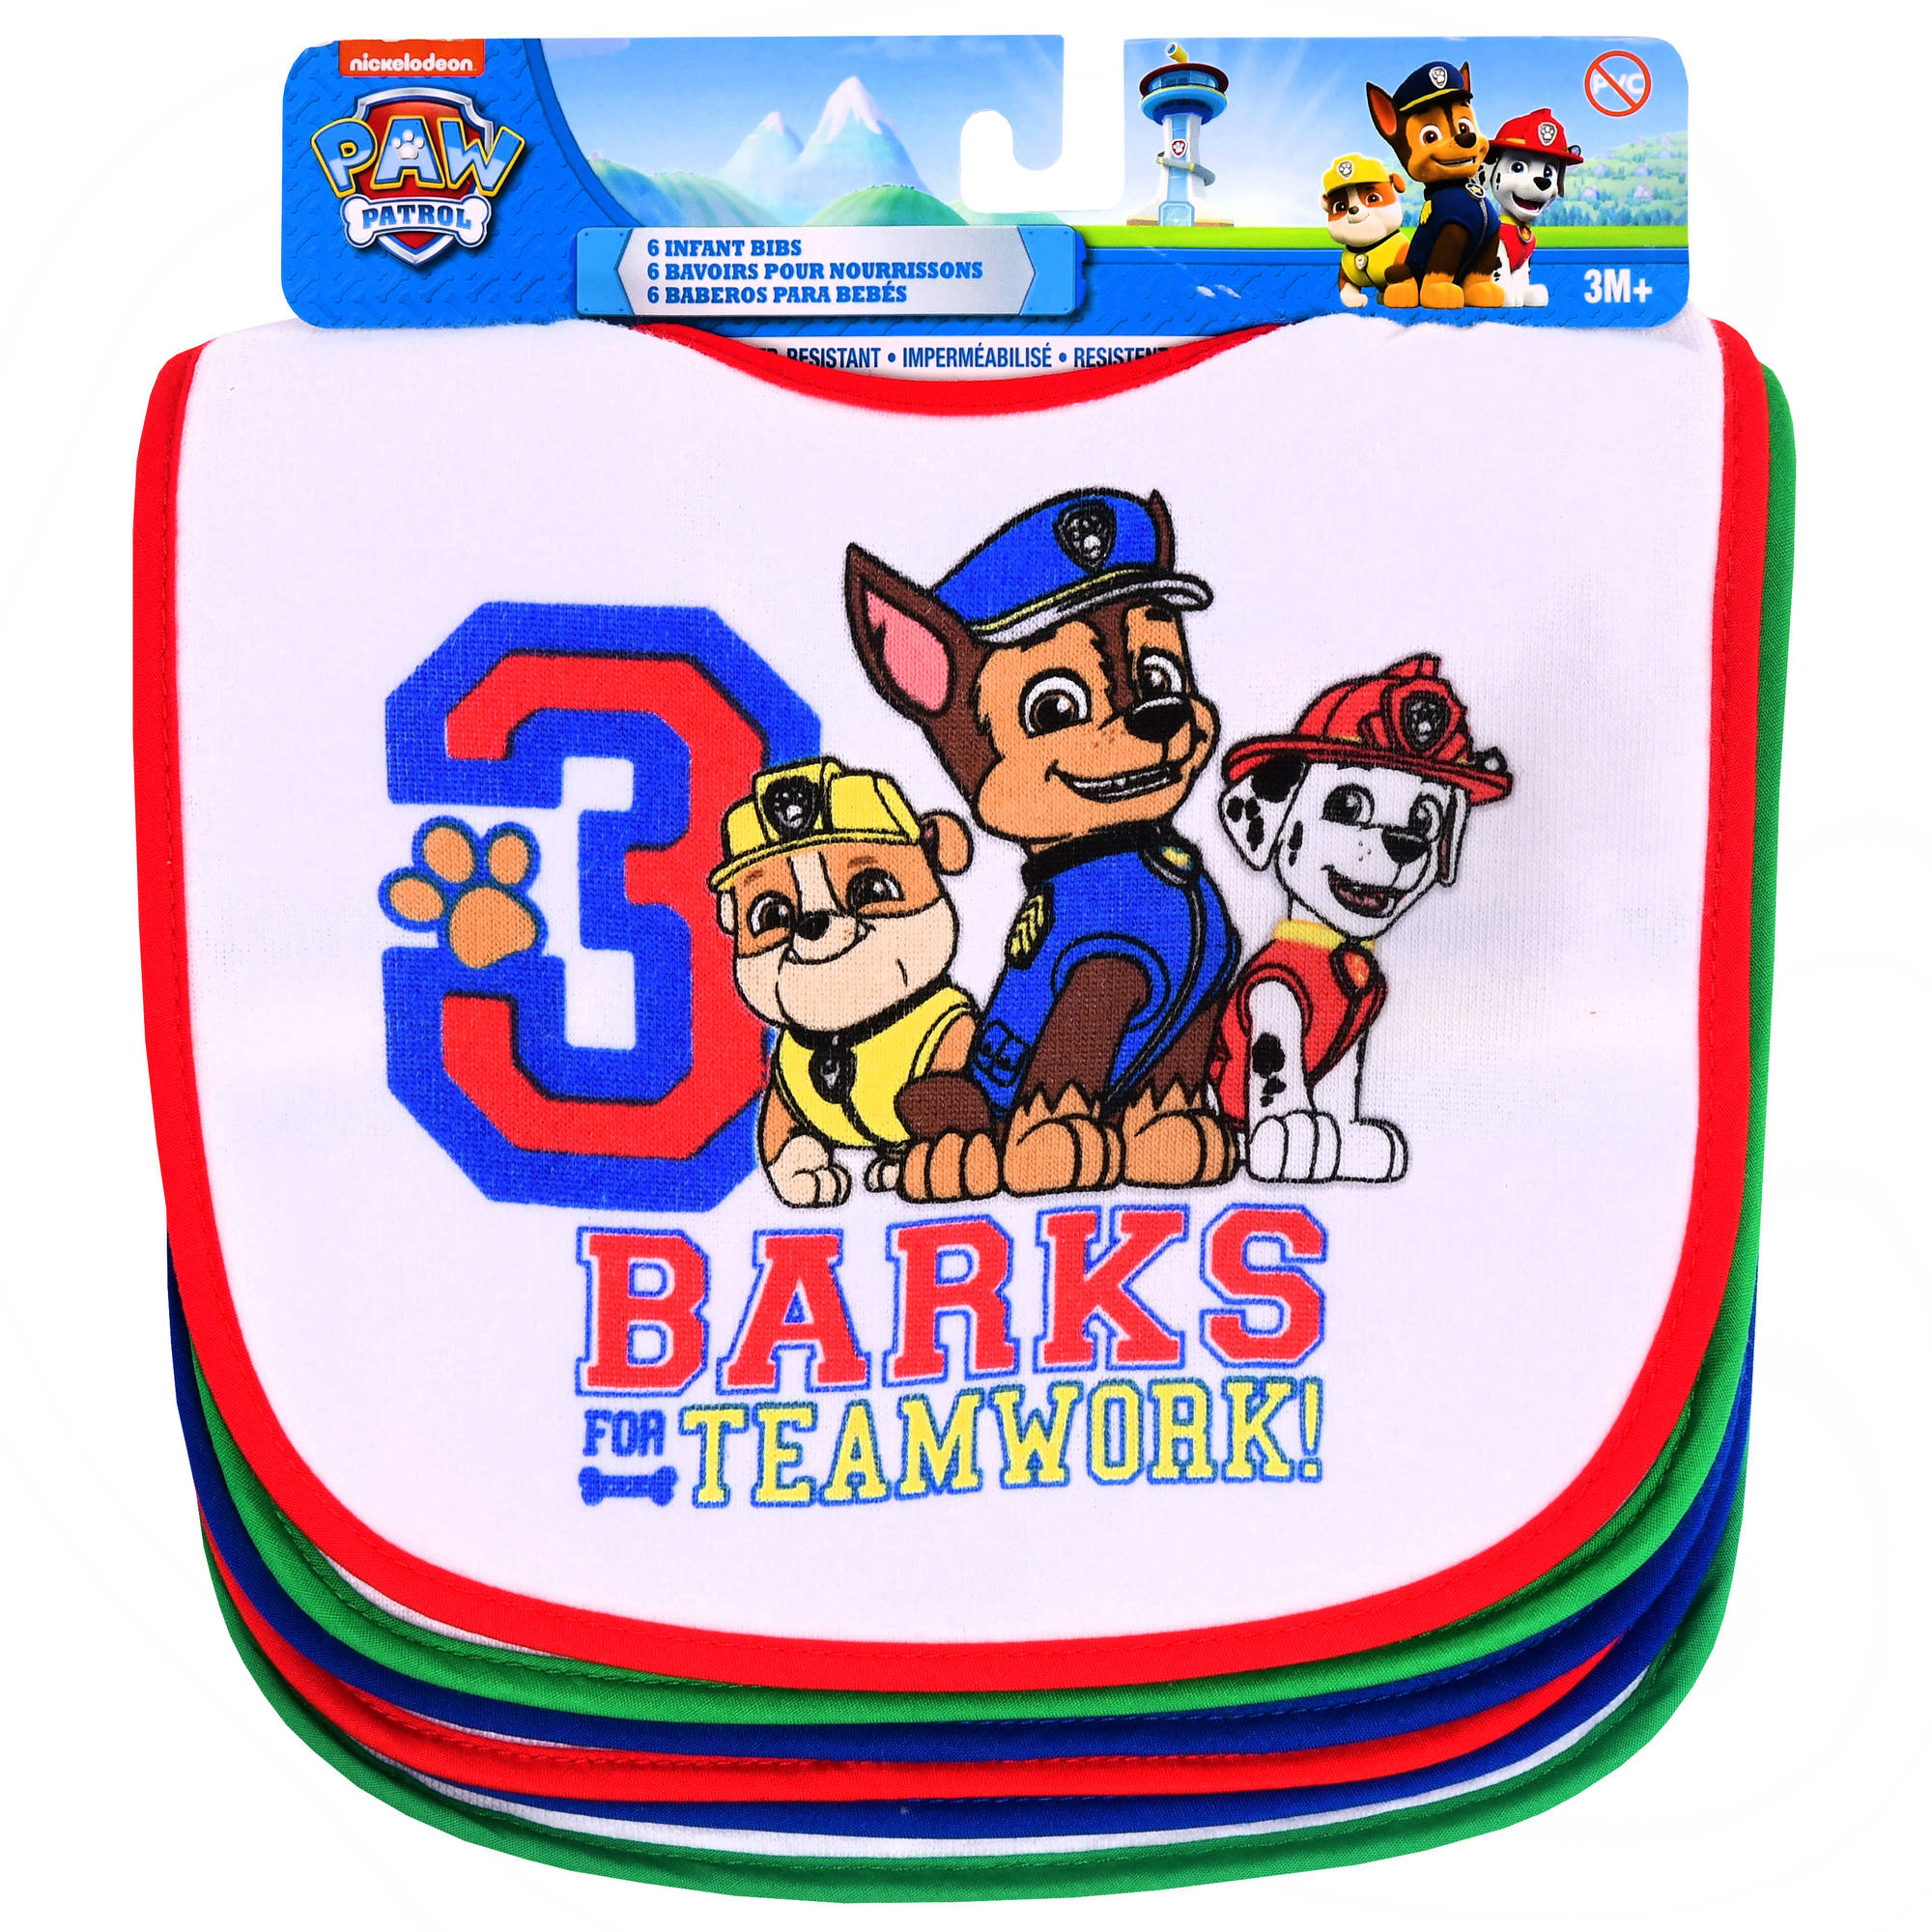 Boy Paw Patrol Bibs, Pack of 6